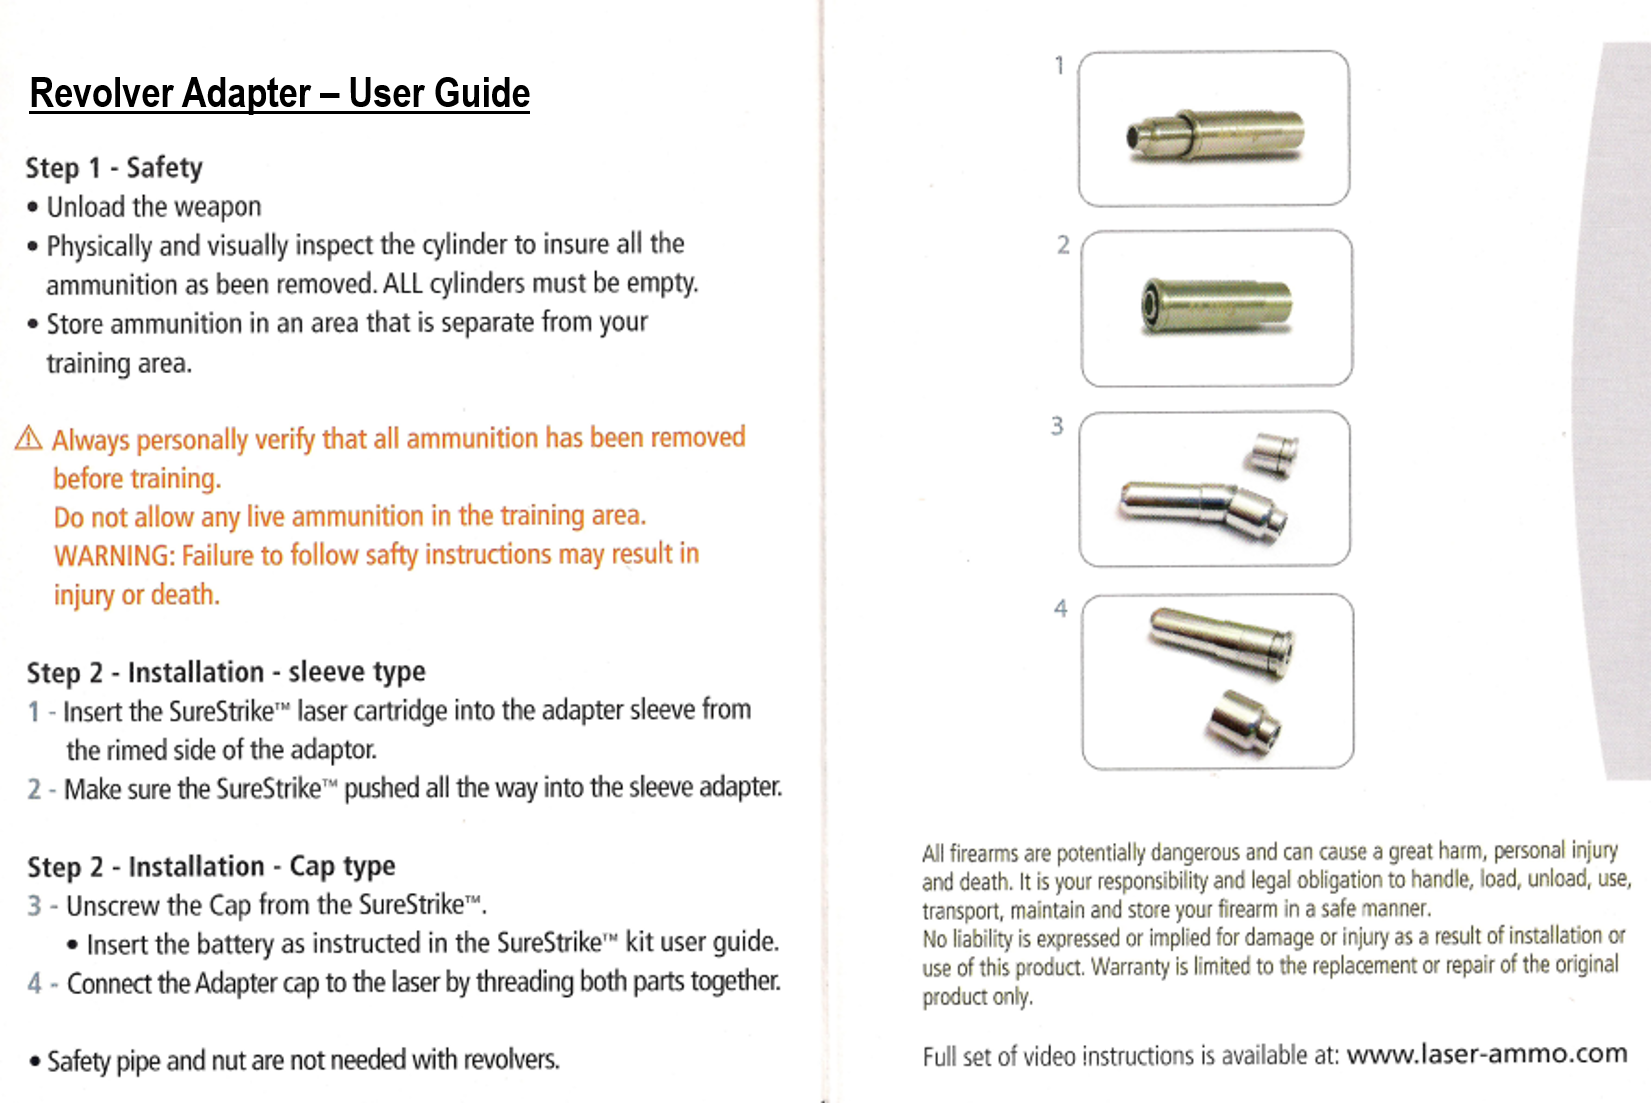 Revolver Adapter User Guide for 45 Long Colt and 44 Mag